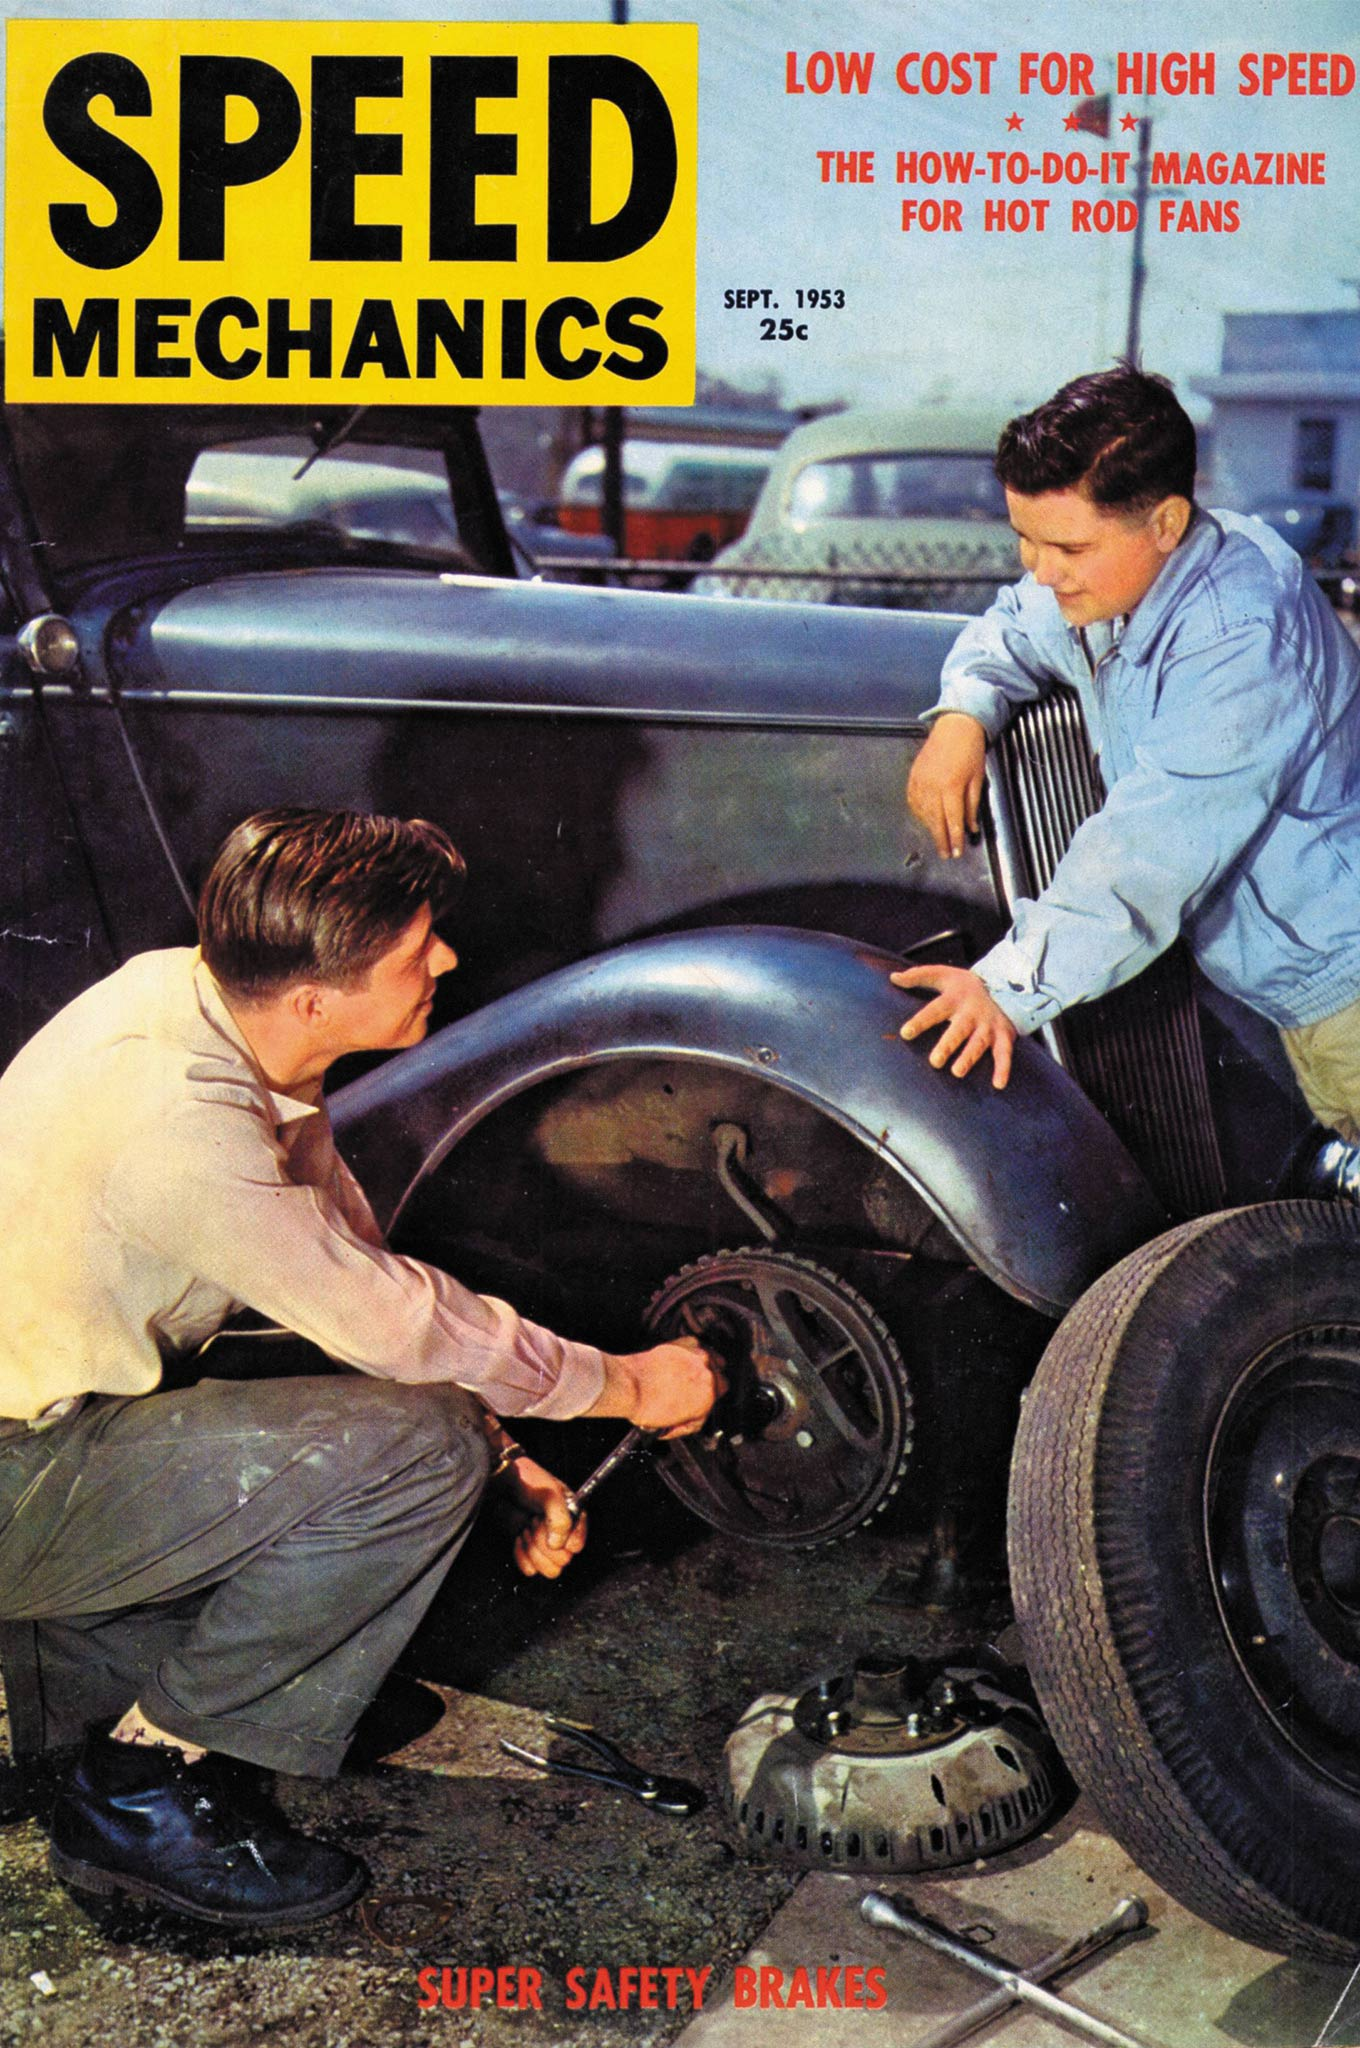 """In September 1953, Speed Mechanics ran a teaser article on Kinmont brakes. They called them """"Kimmott"""" Super Safety Brakes and showed them on Walter Werner's  '34 Ford cabriolet. At the end of  the text, Speed Mechanics told its readers the brakes """"were no longer  in production."""" All of the Kinmont Safe Stop  brake parts are unique. Ample vents and slots ensure a steady flow of cooling air."""